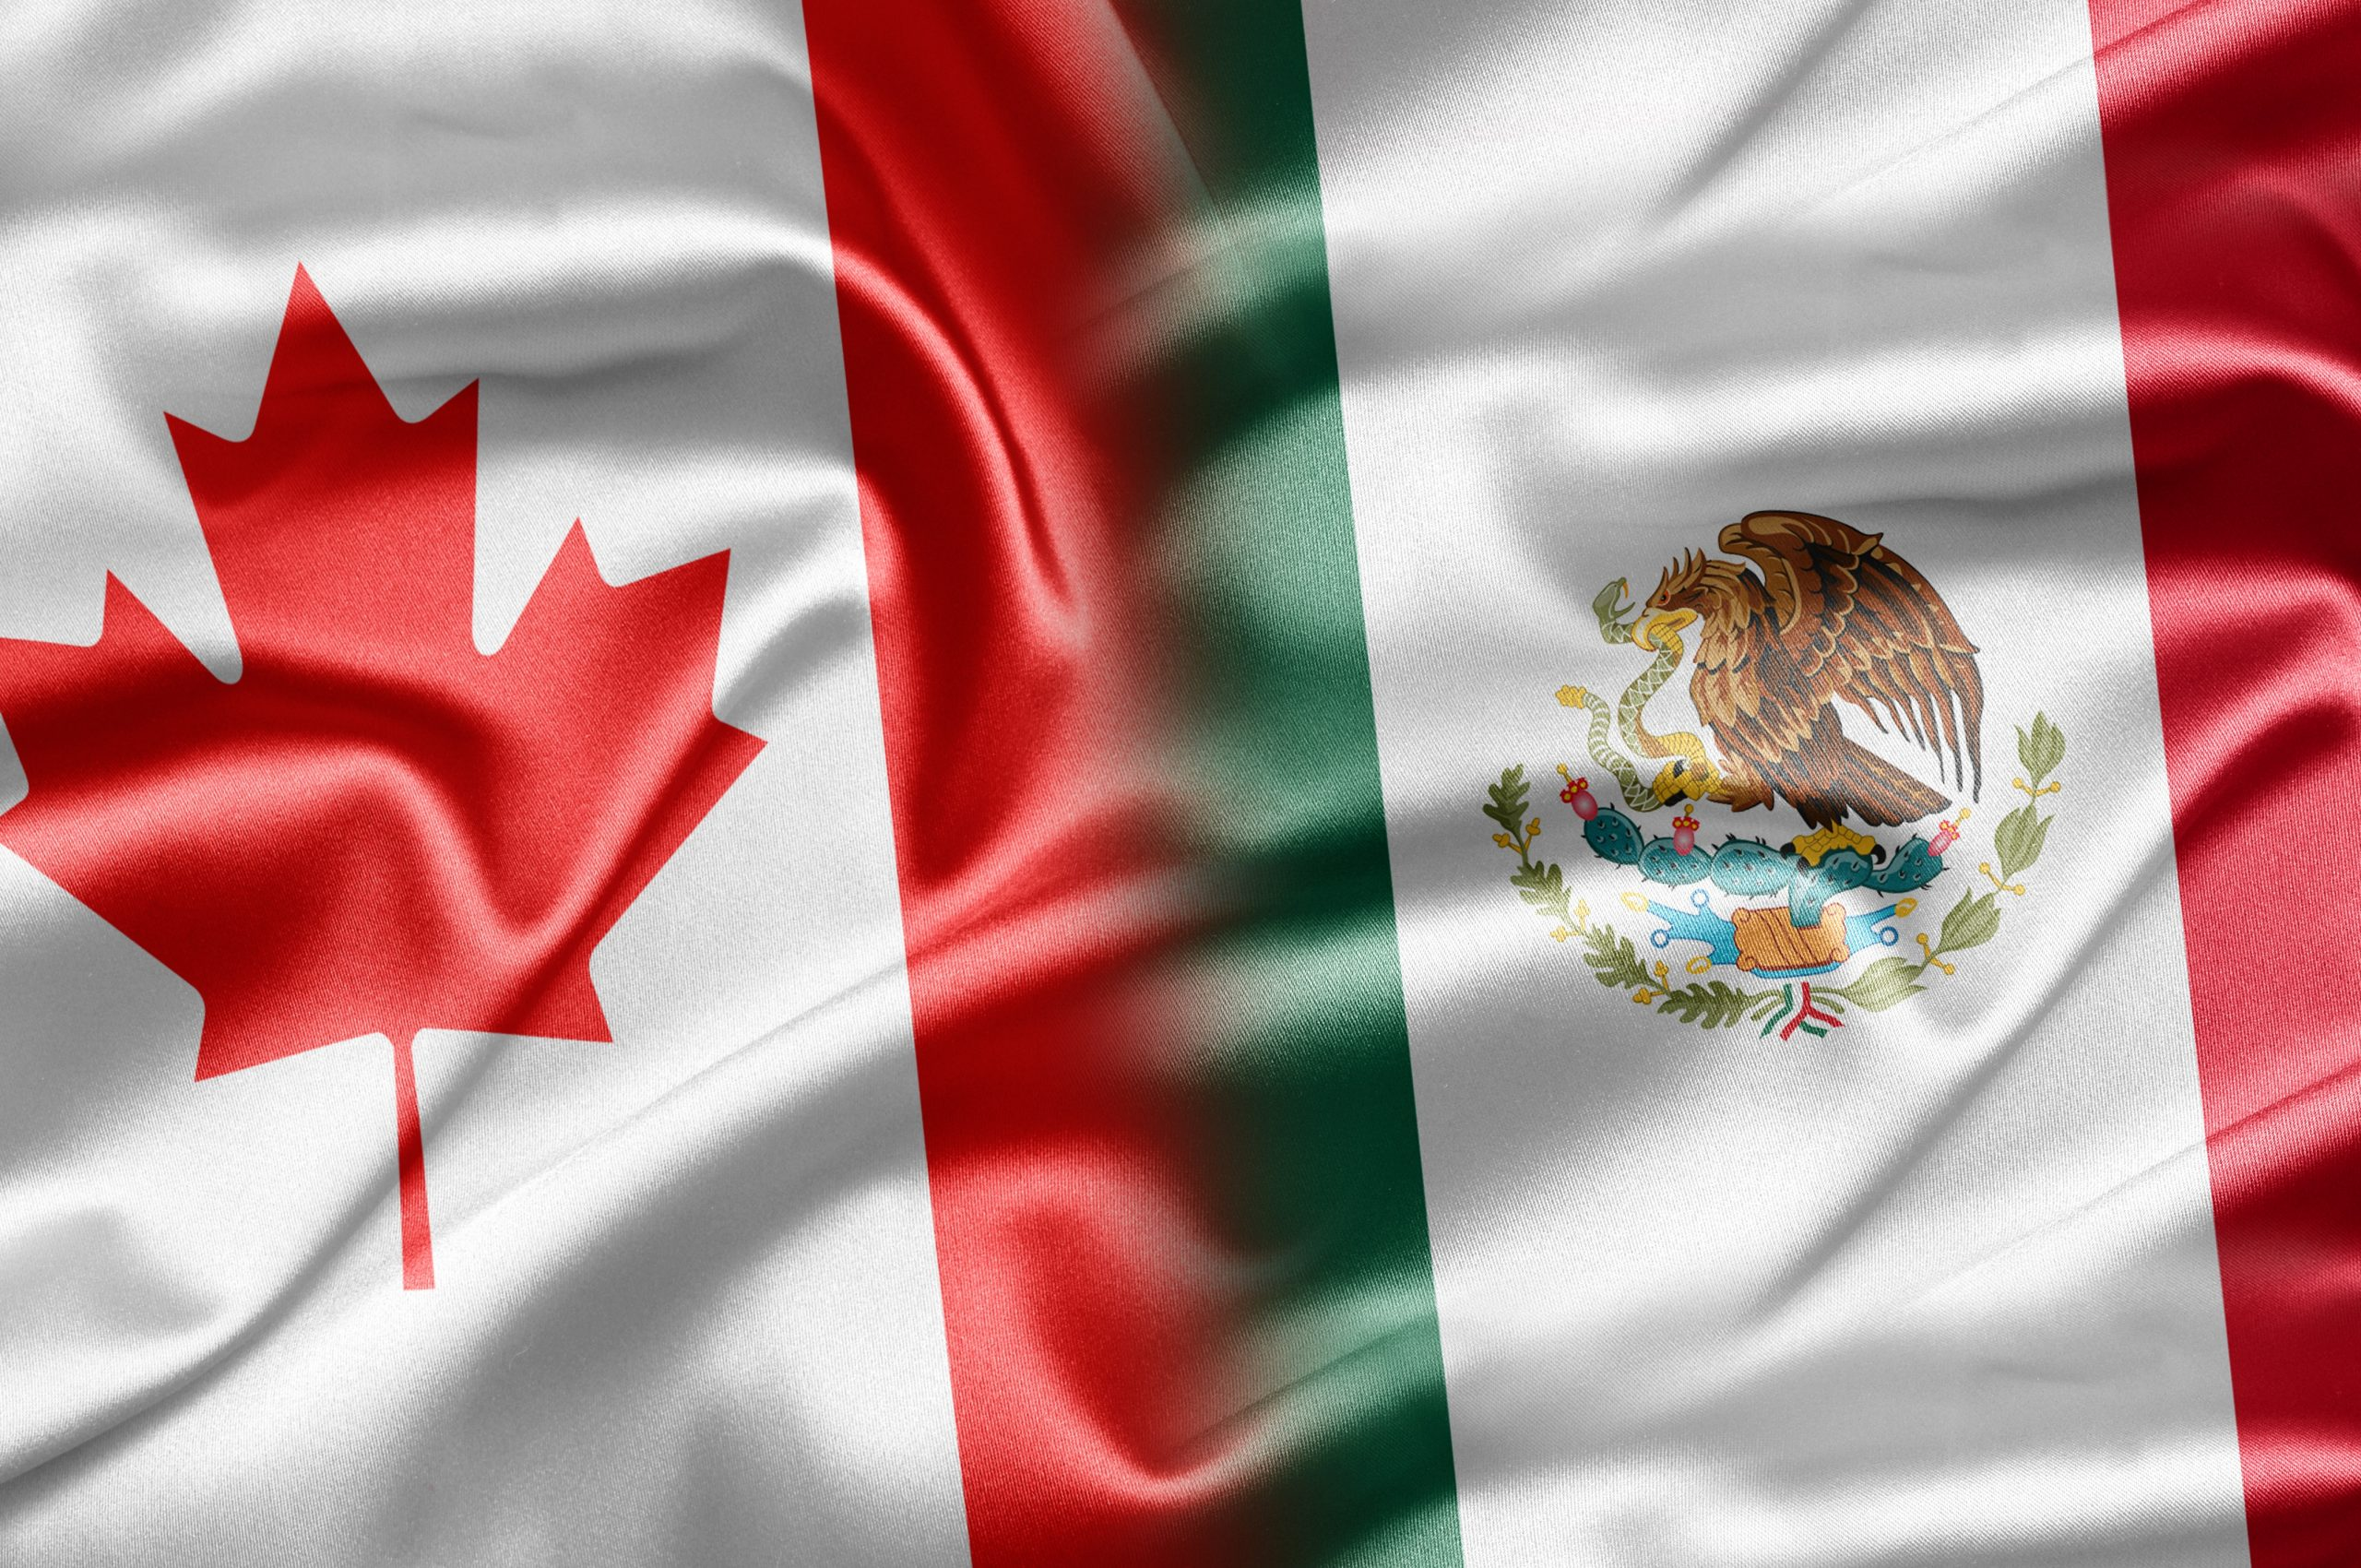 Canada should support Mexico in US feud: SFU prof